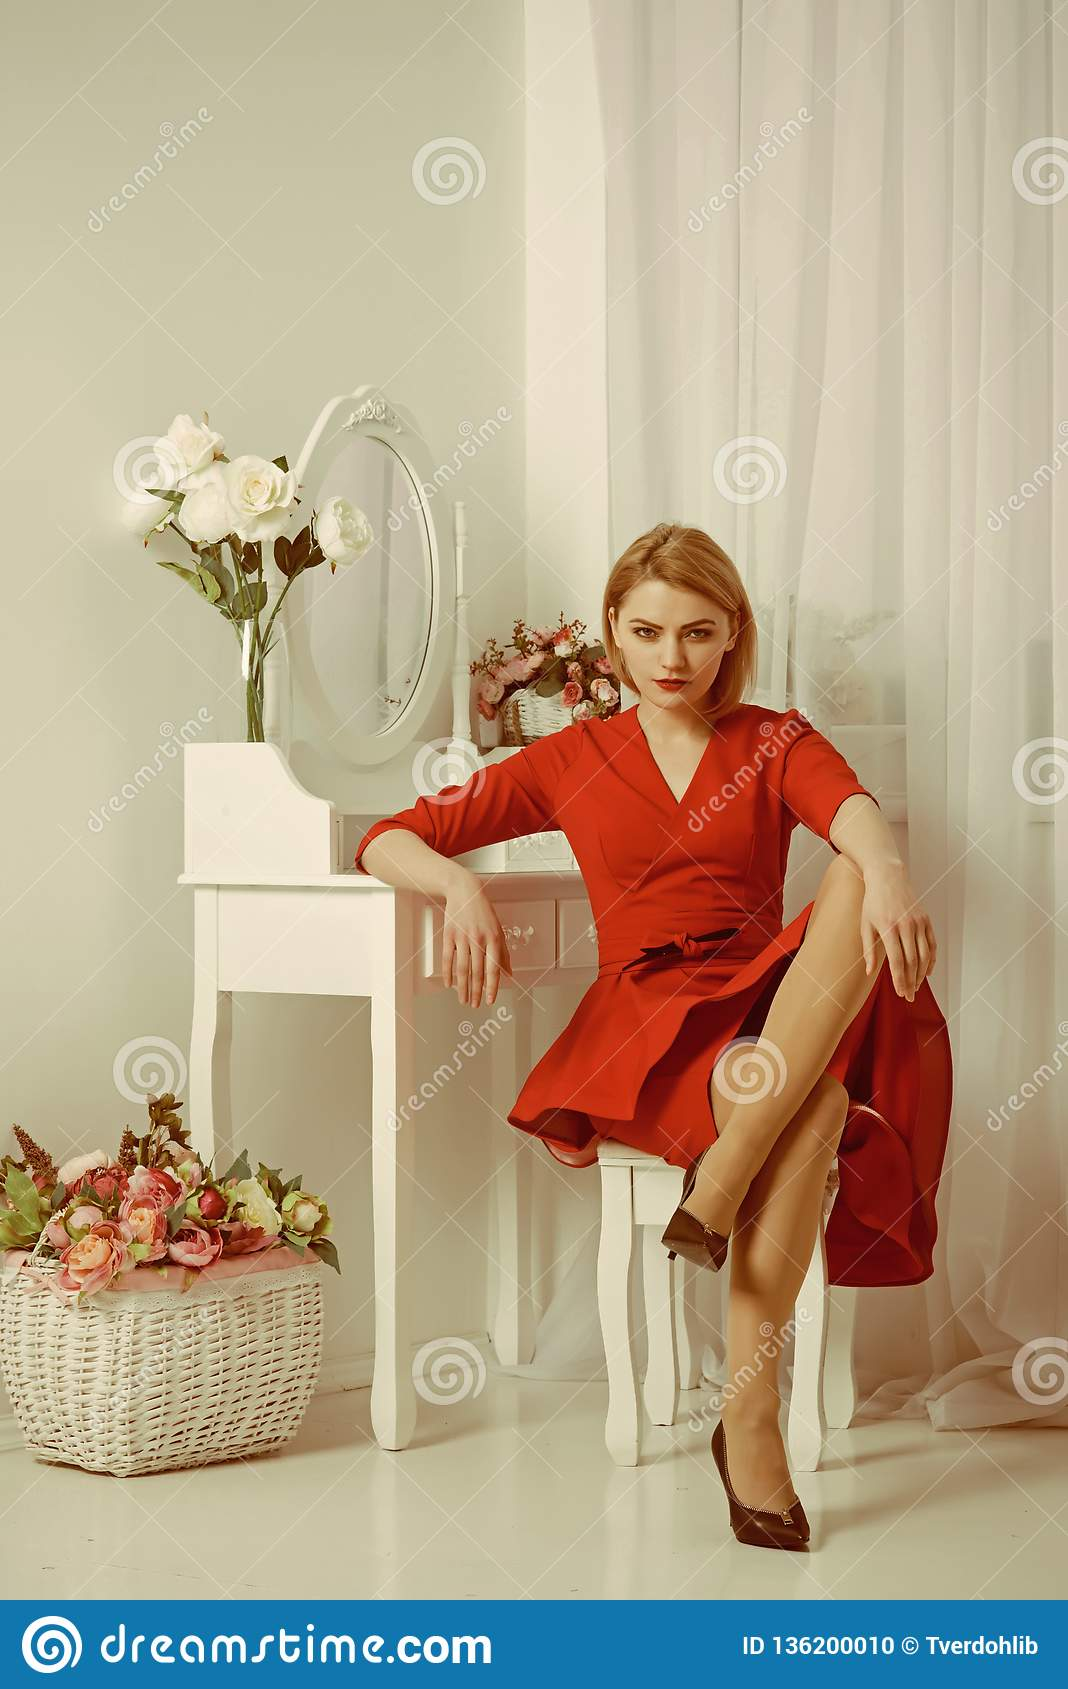 Woman In Red Dress Woman Grooming In Morning At Mirror Bedroom